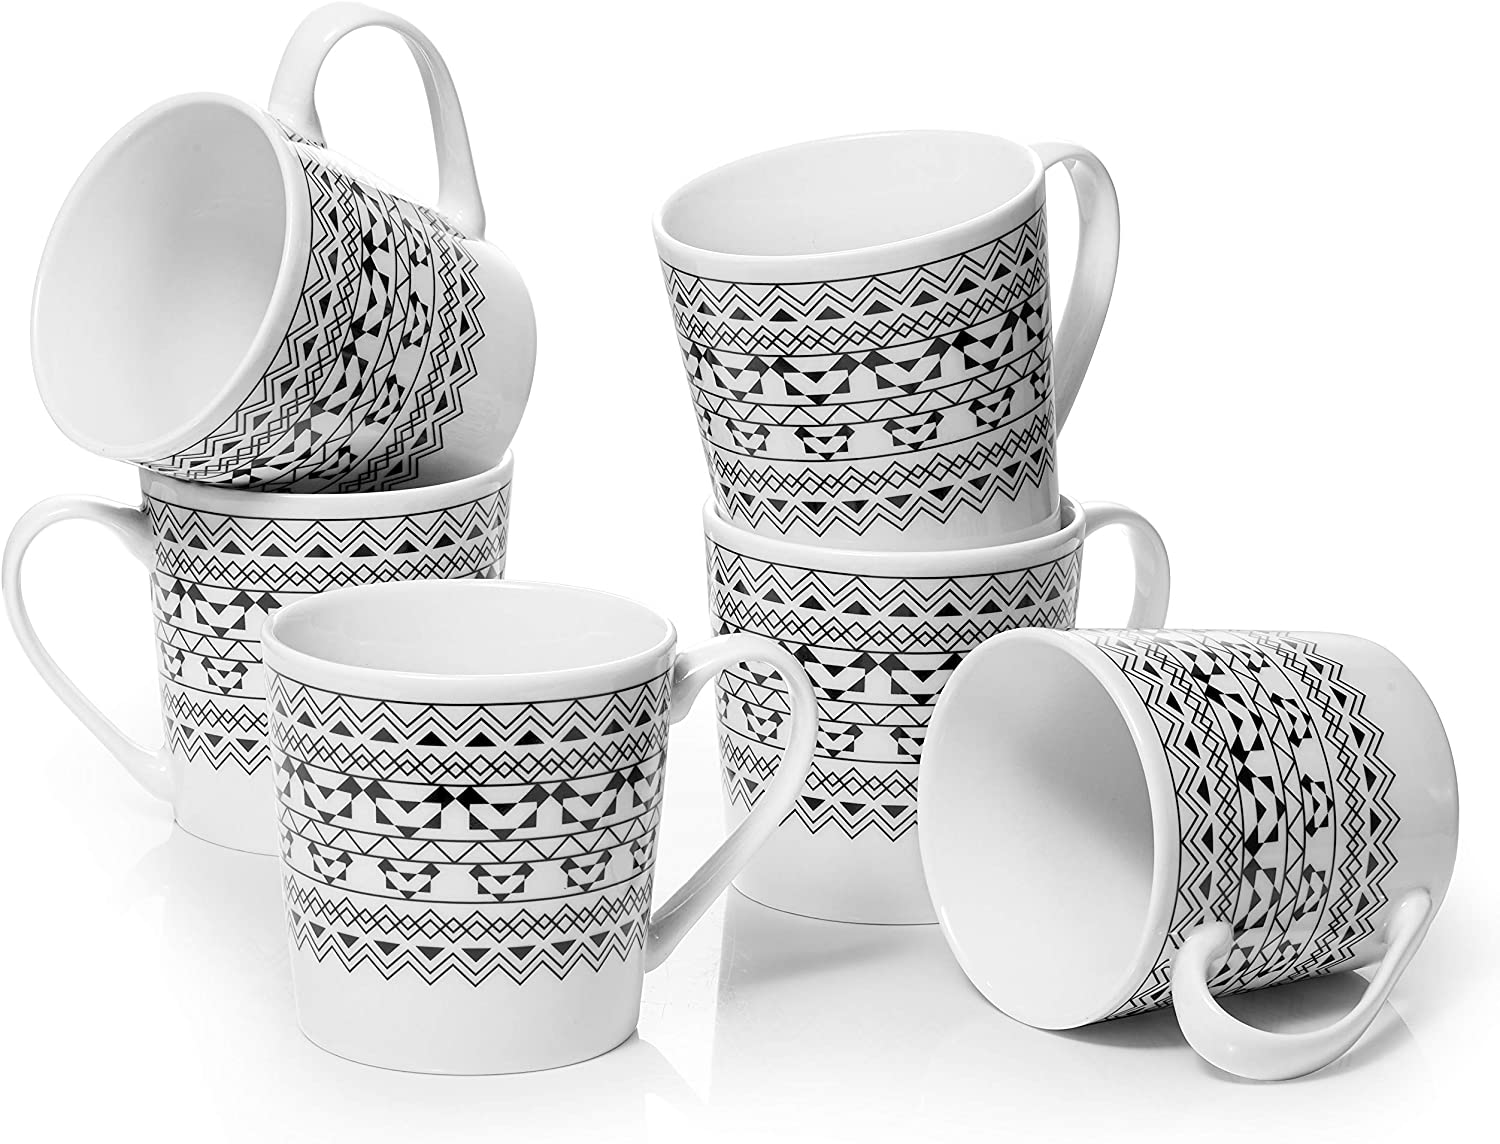 DOWAN Coffee Mugs Set, 18 Oz Large Coffee Mug Set of 6, Ceramic Mugs with Large Handle for Coffee Tea Cocoa, Dishwasher Safe, Chip-free, Modern Bohemian, Ideal Gift for Thanksgiving, Christmas, Party